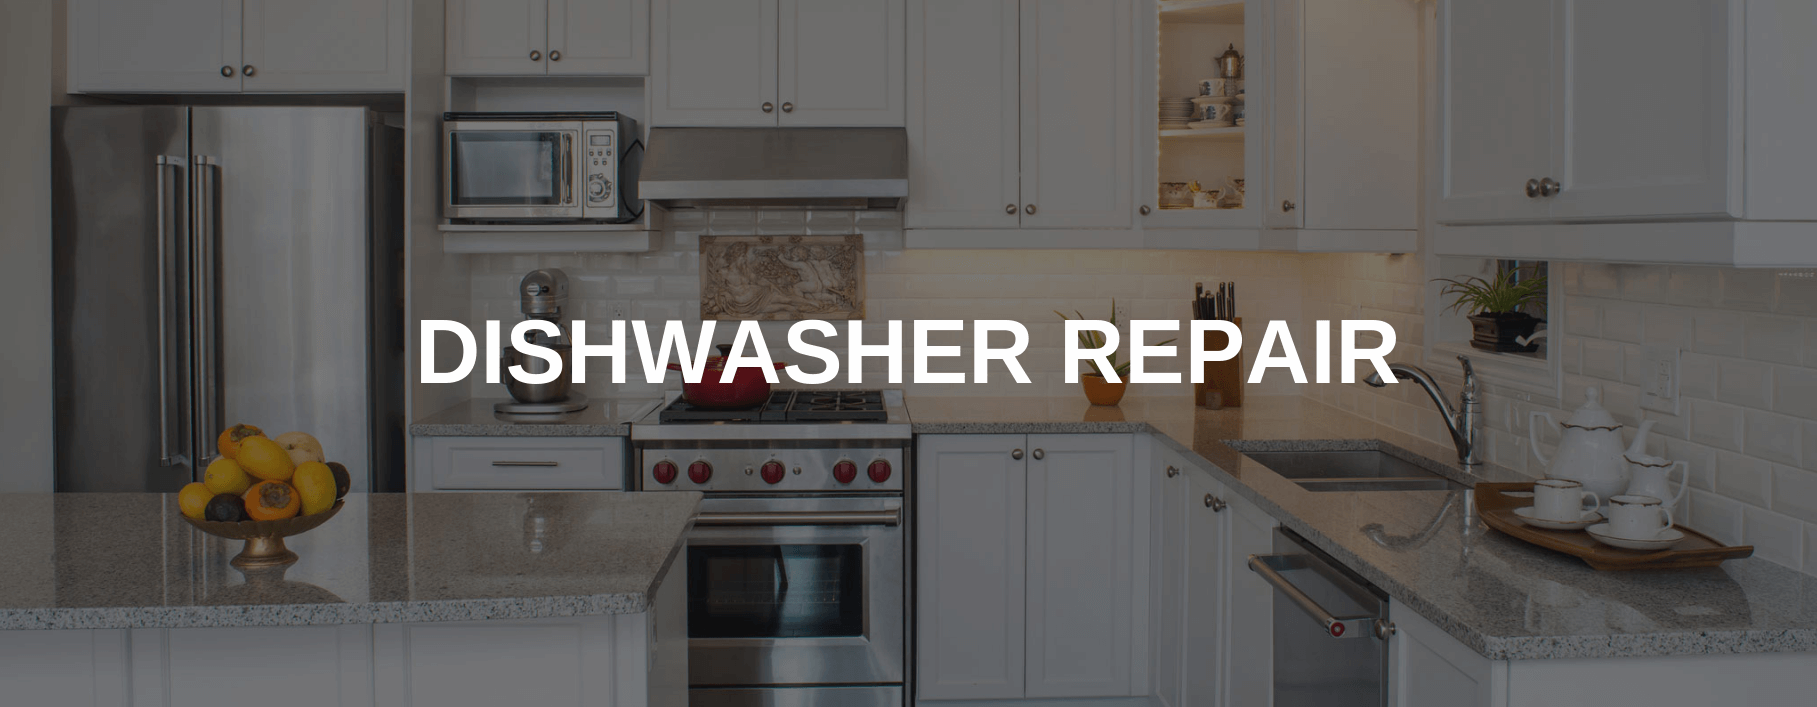 dishwasher repair san bernardino